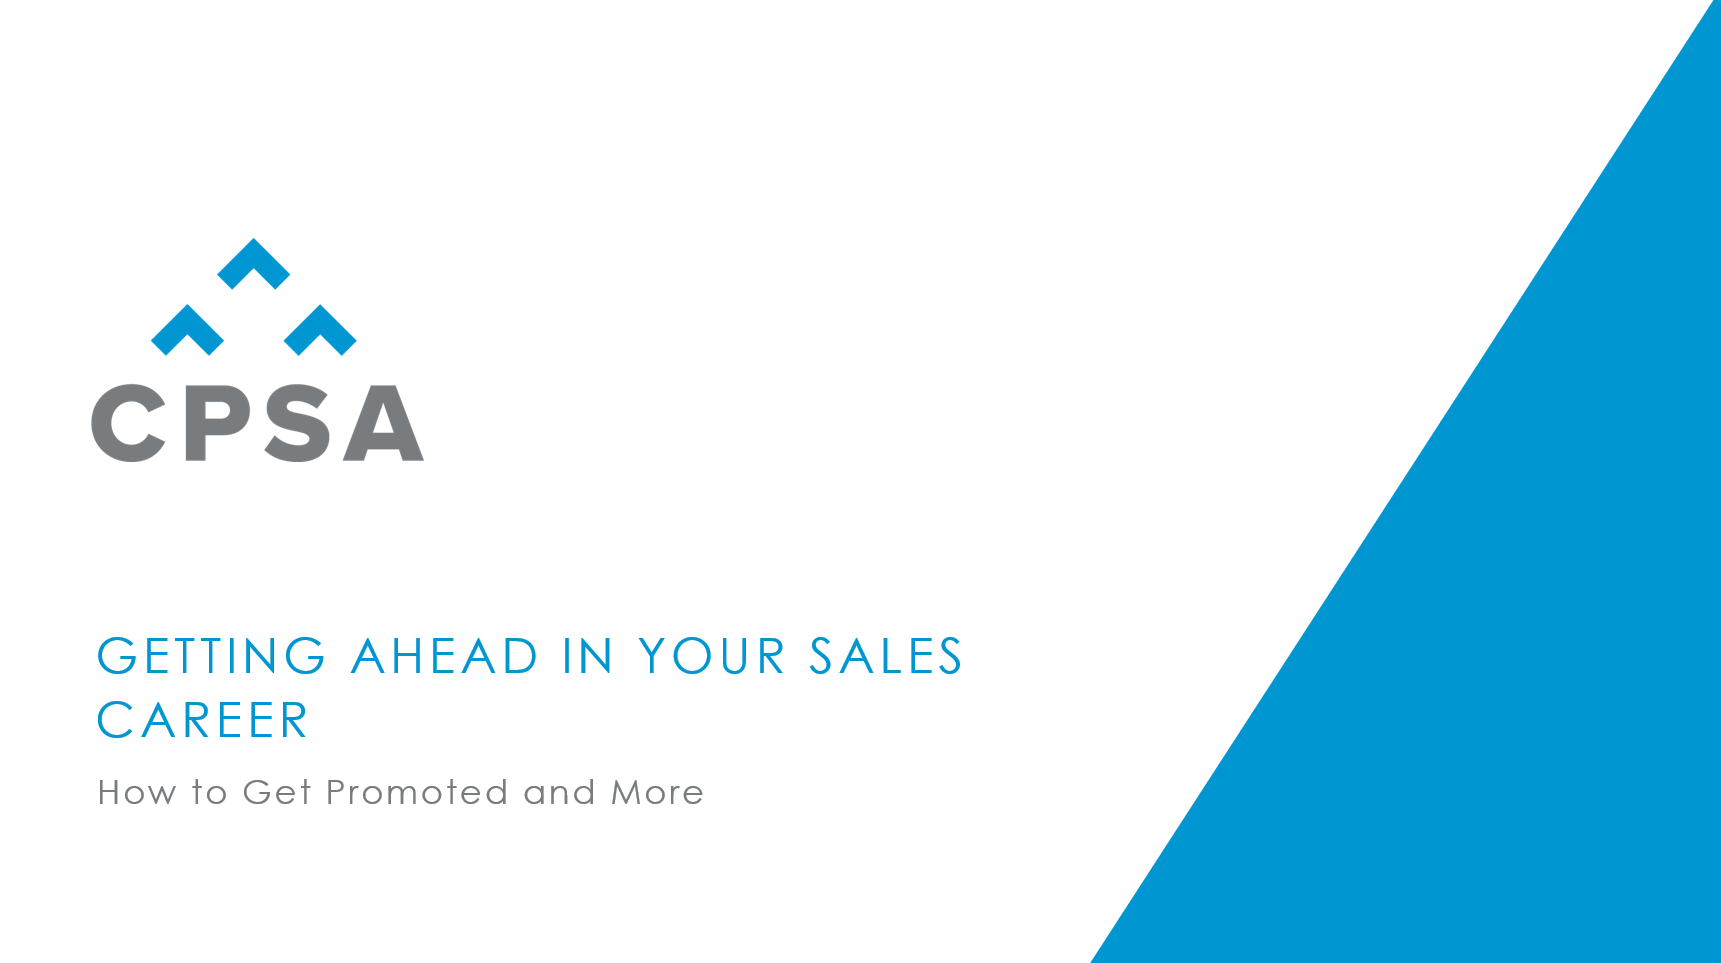 CPSA Webinar Recording- Getting Ahead in Your Sales Career: How to Get Promoted